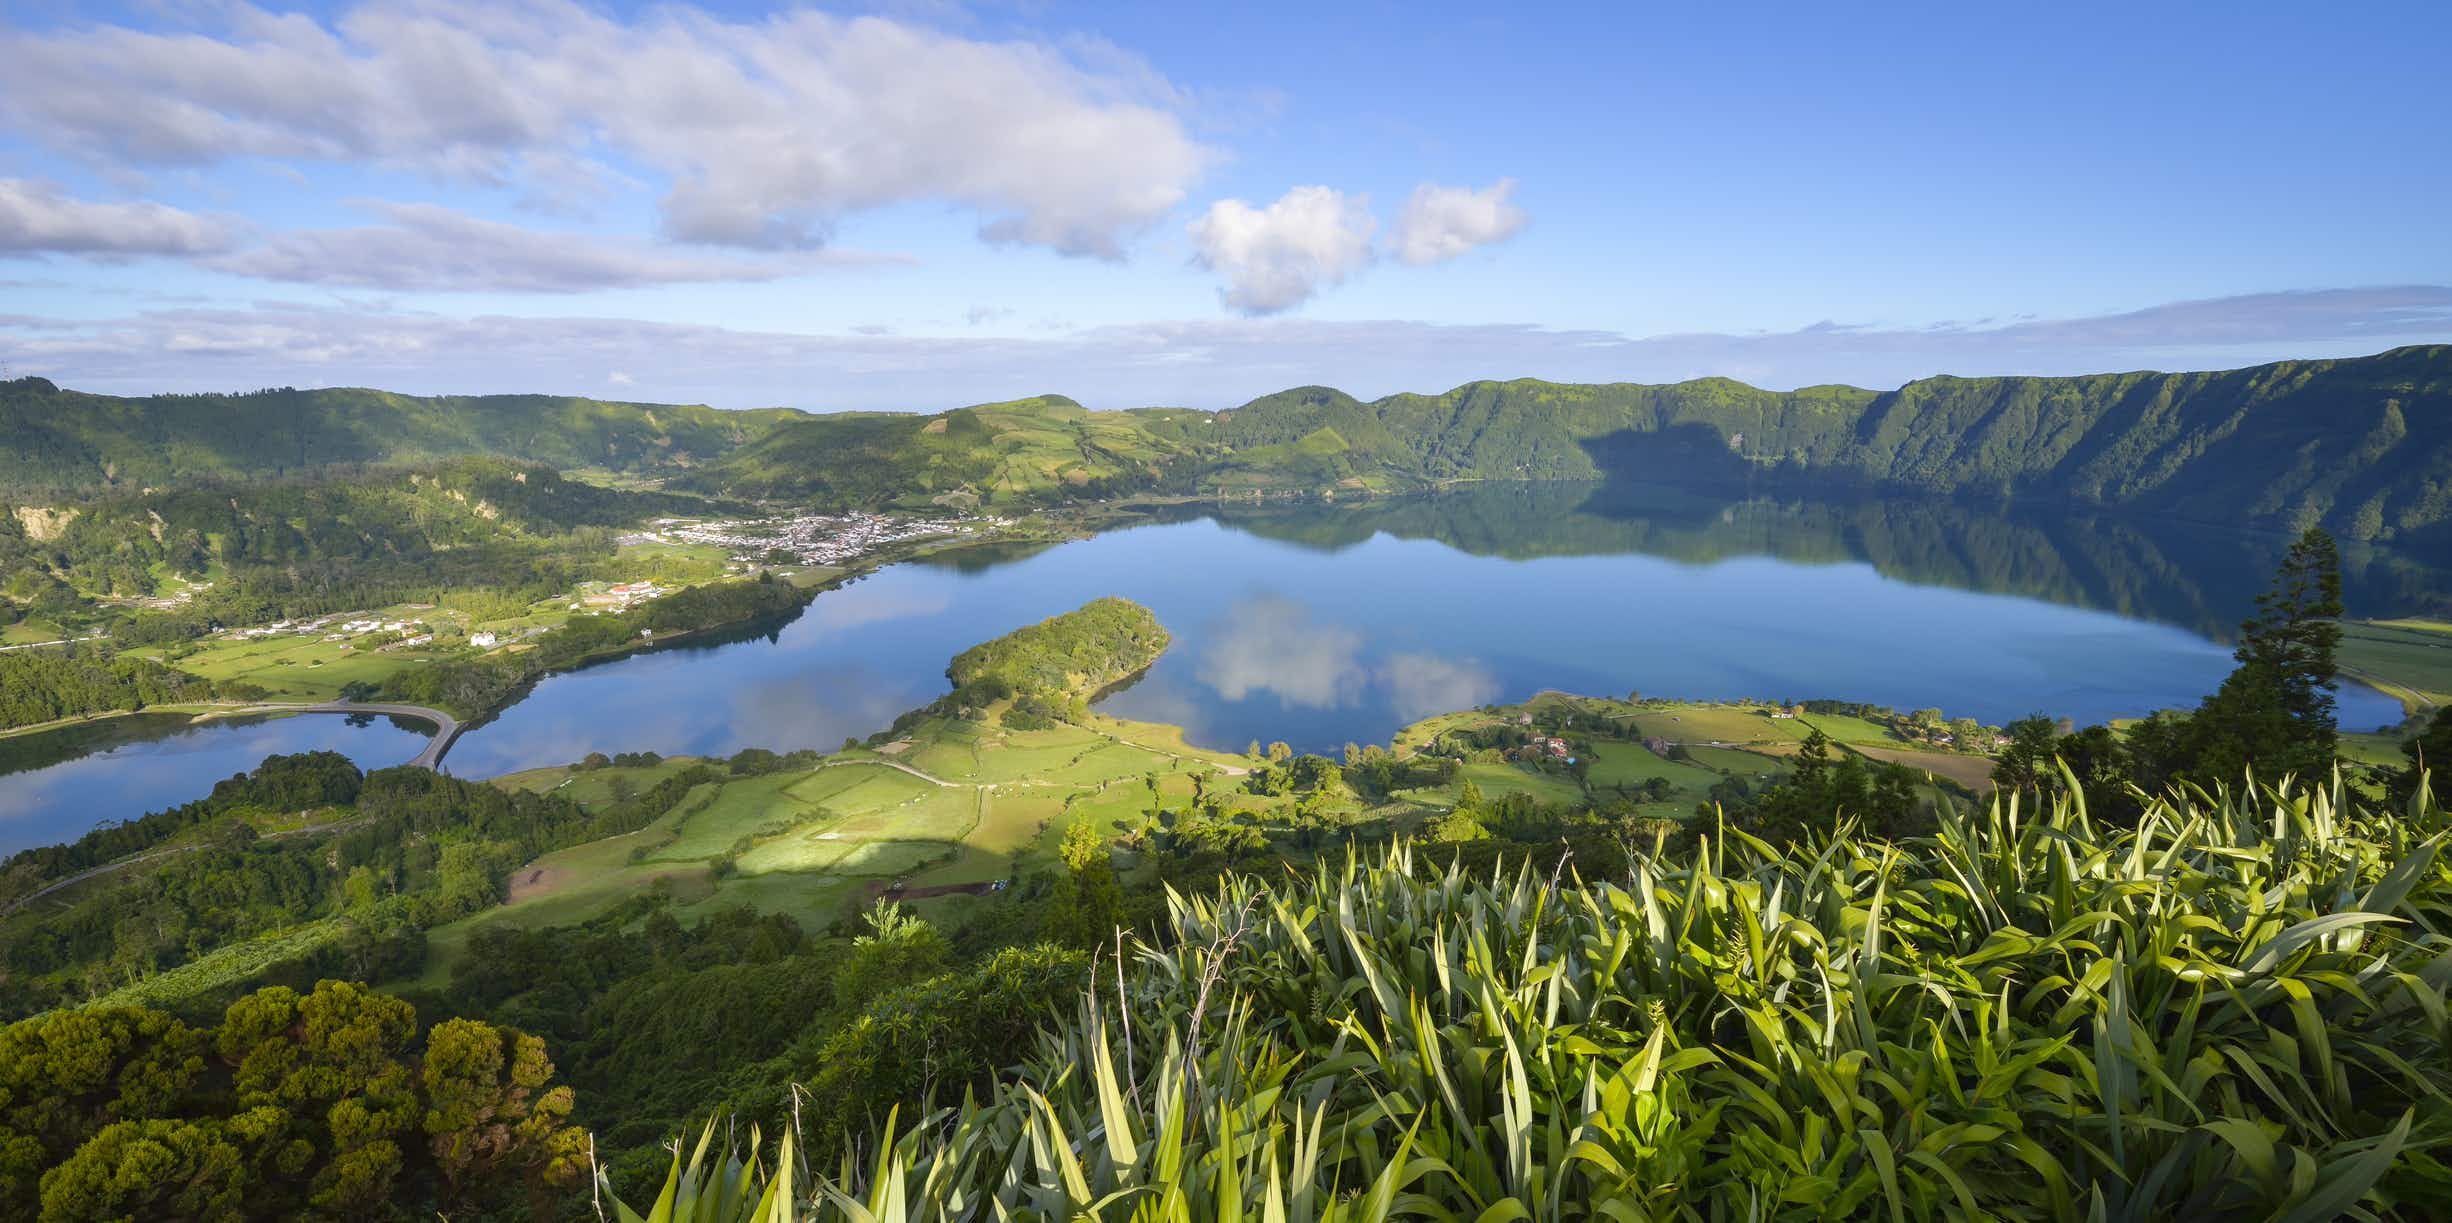 Abandoned Monte Palace hotel in the Azores to reopen after 27 years